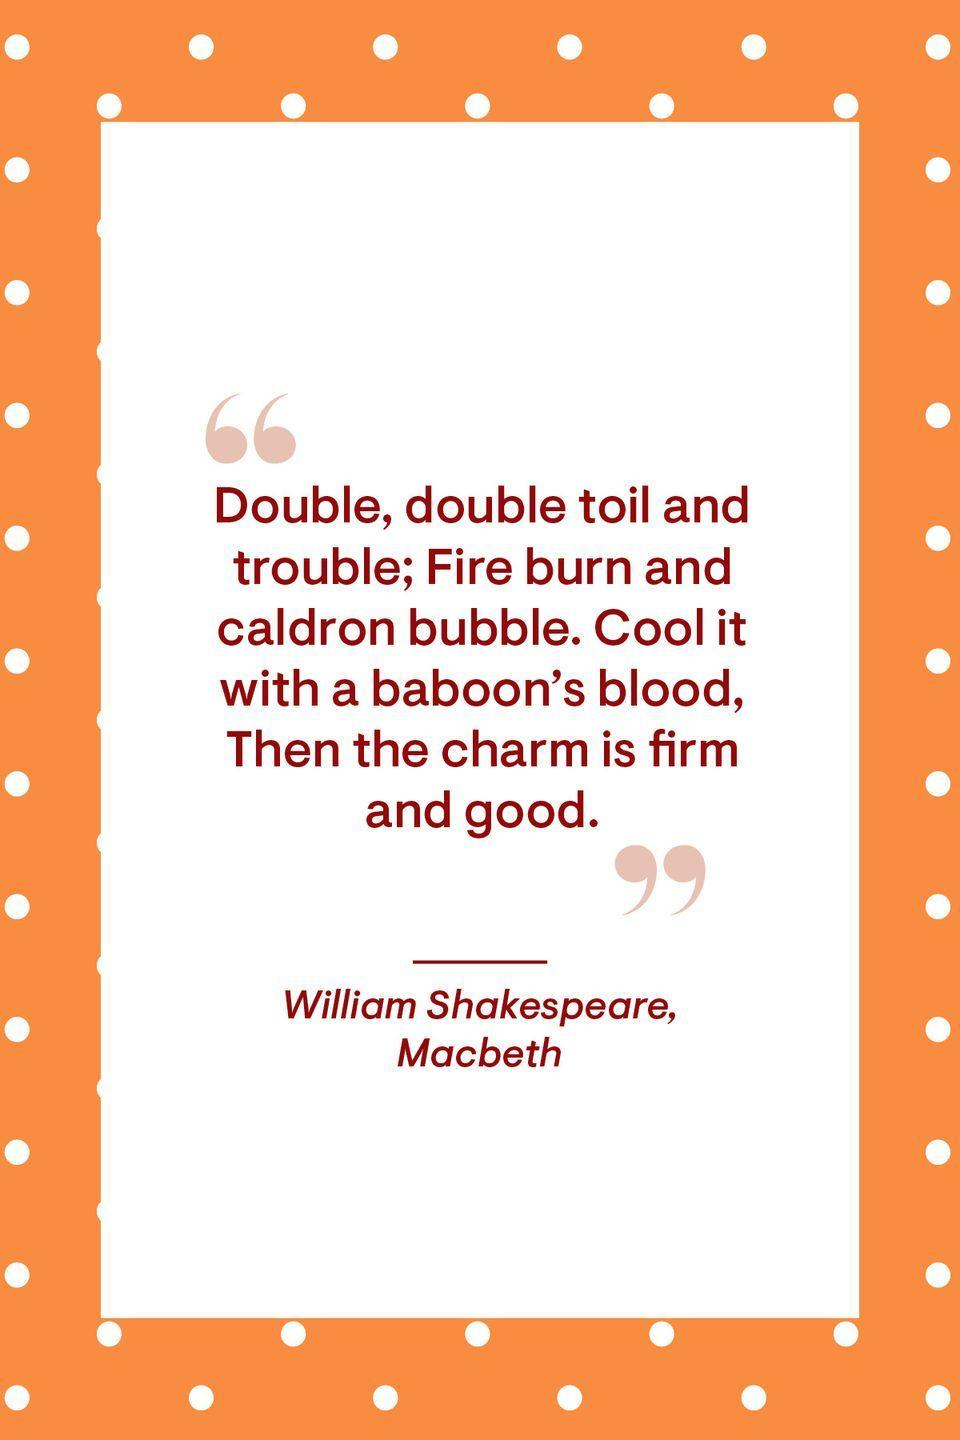 """<p>""""Double, double toil and trouble; Fire burn and caldron bubble. Cool it with a baboon's blood, Then the charm is firm and good.""""</p>"""